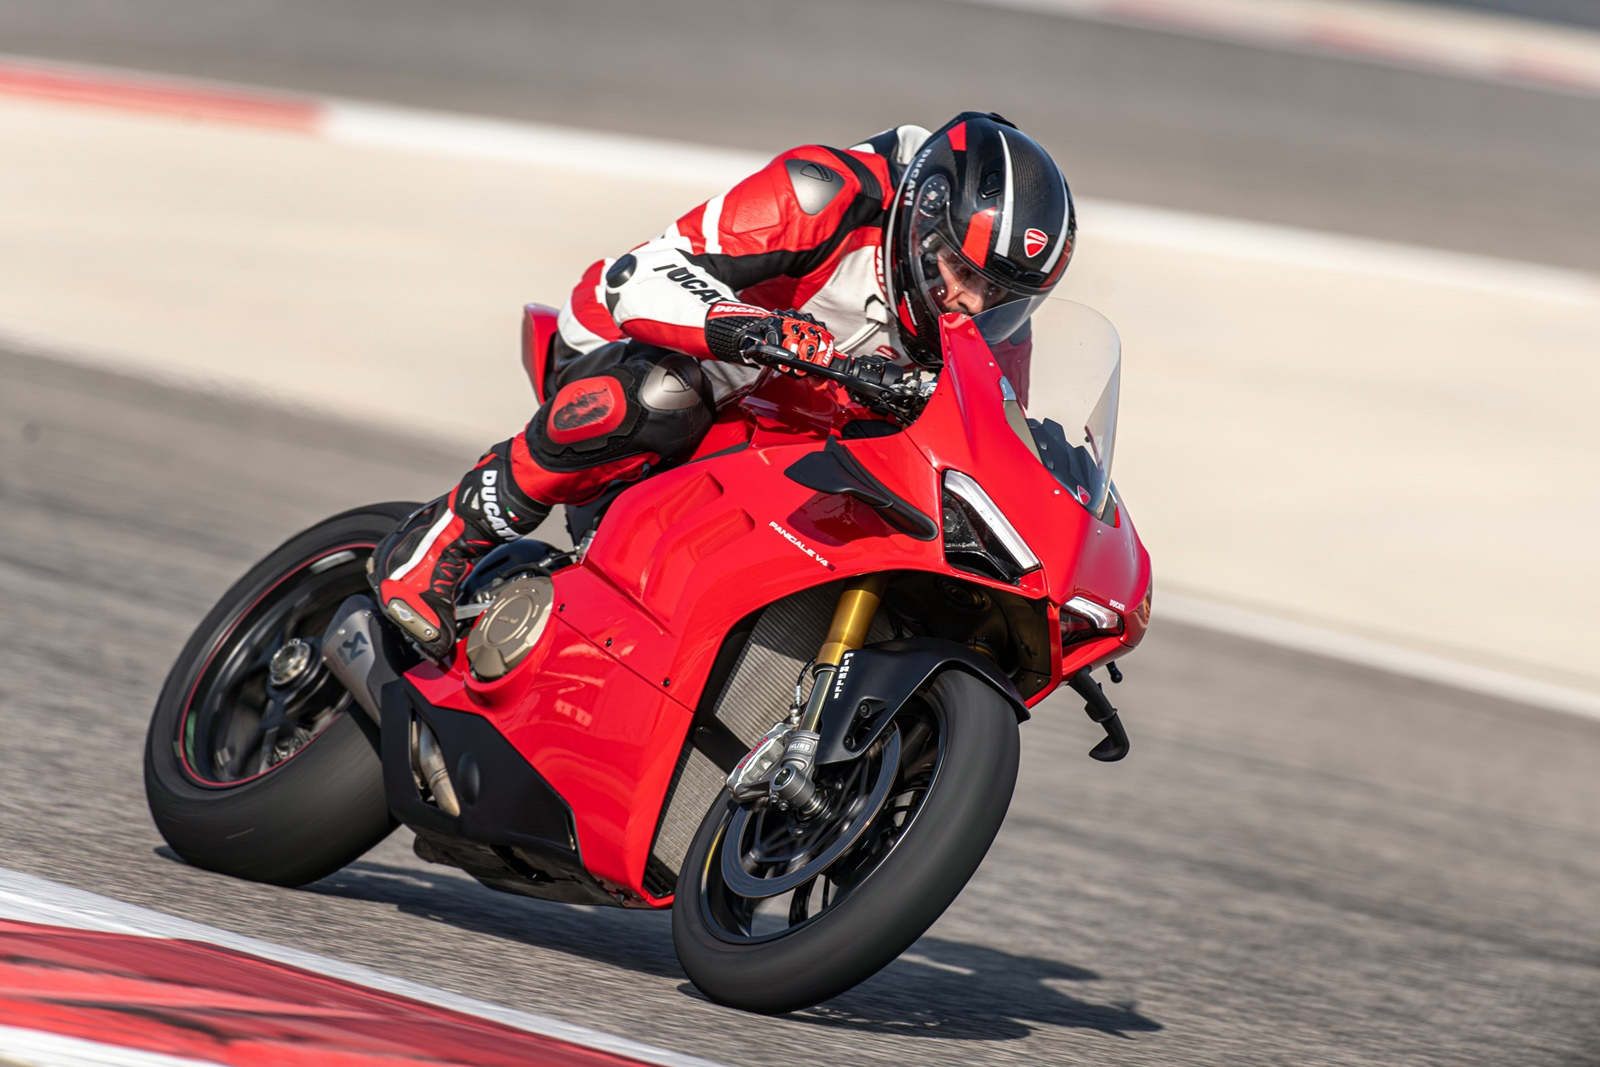 BS6 Panigale V4 launched in India